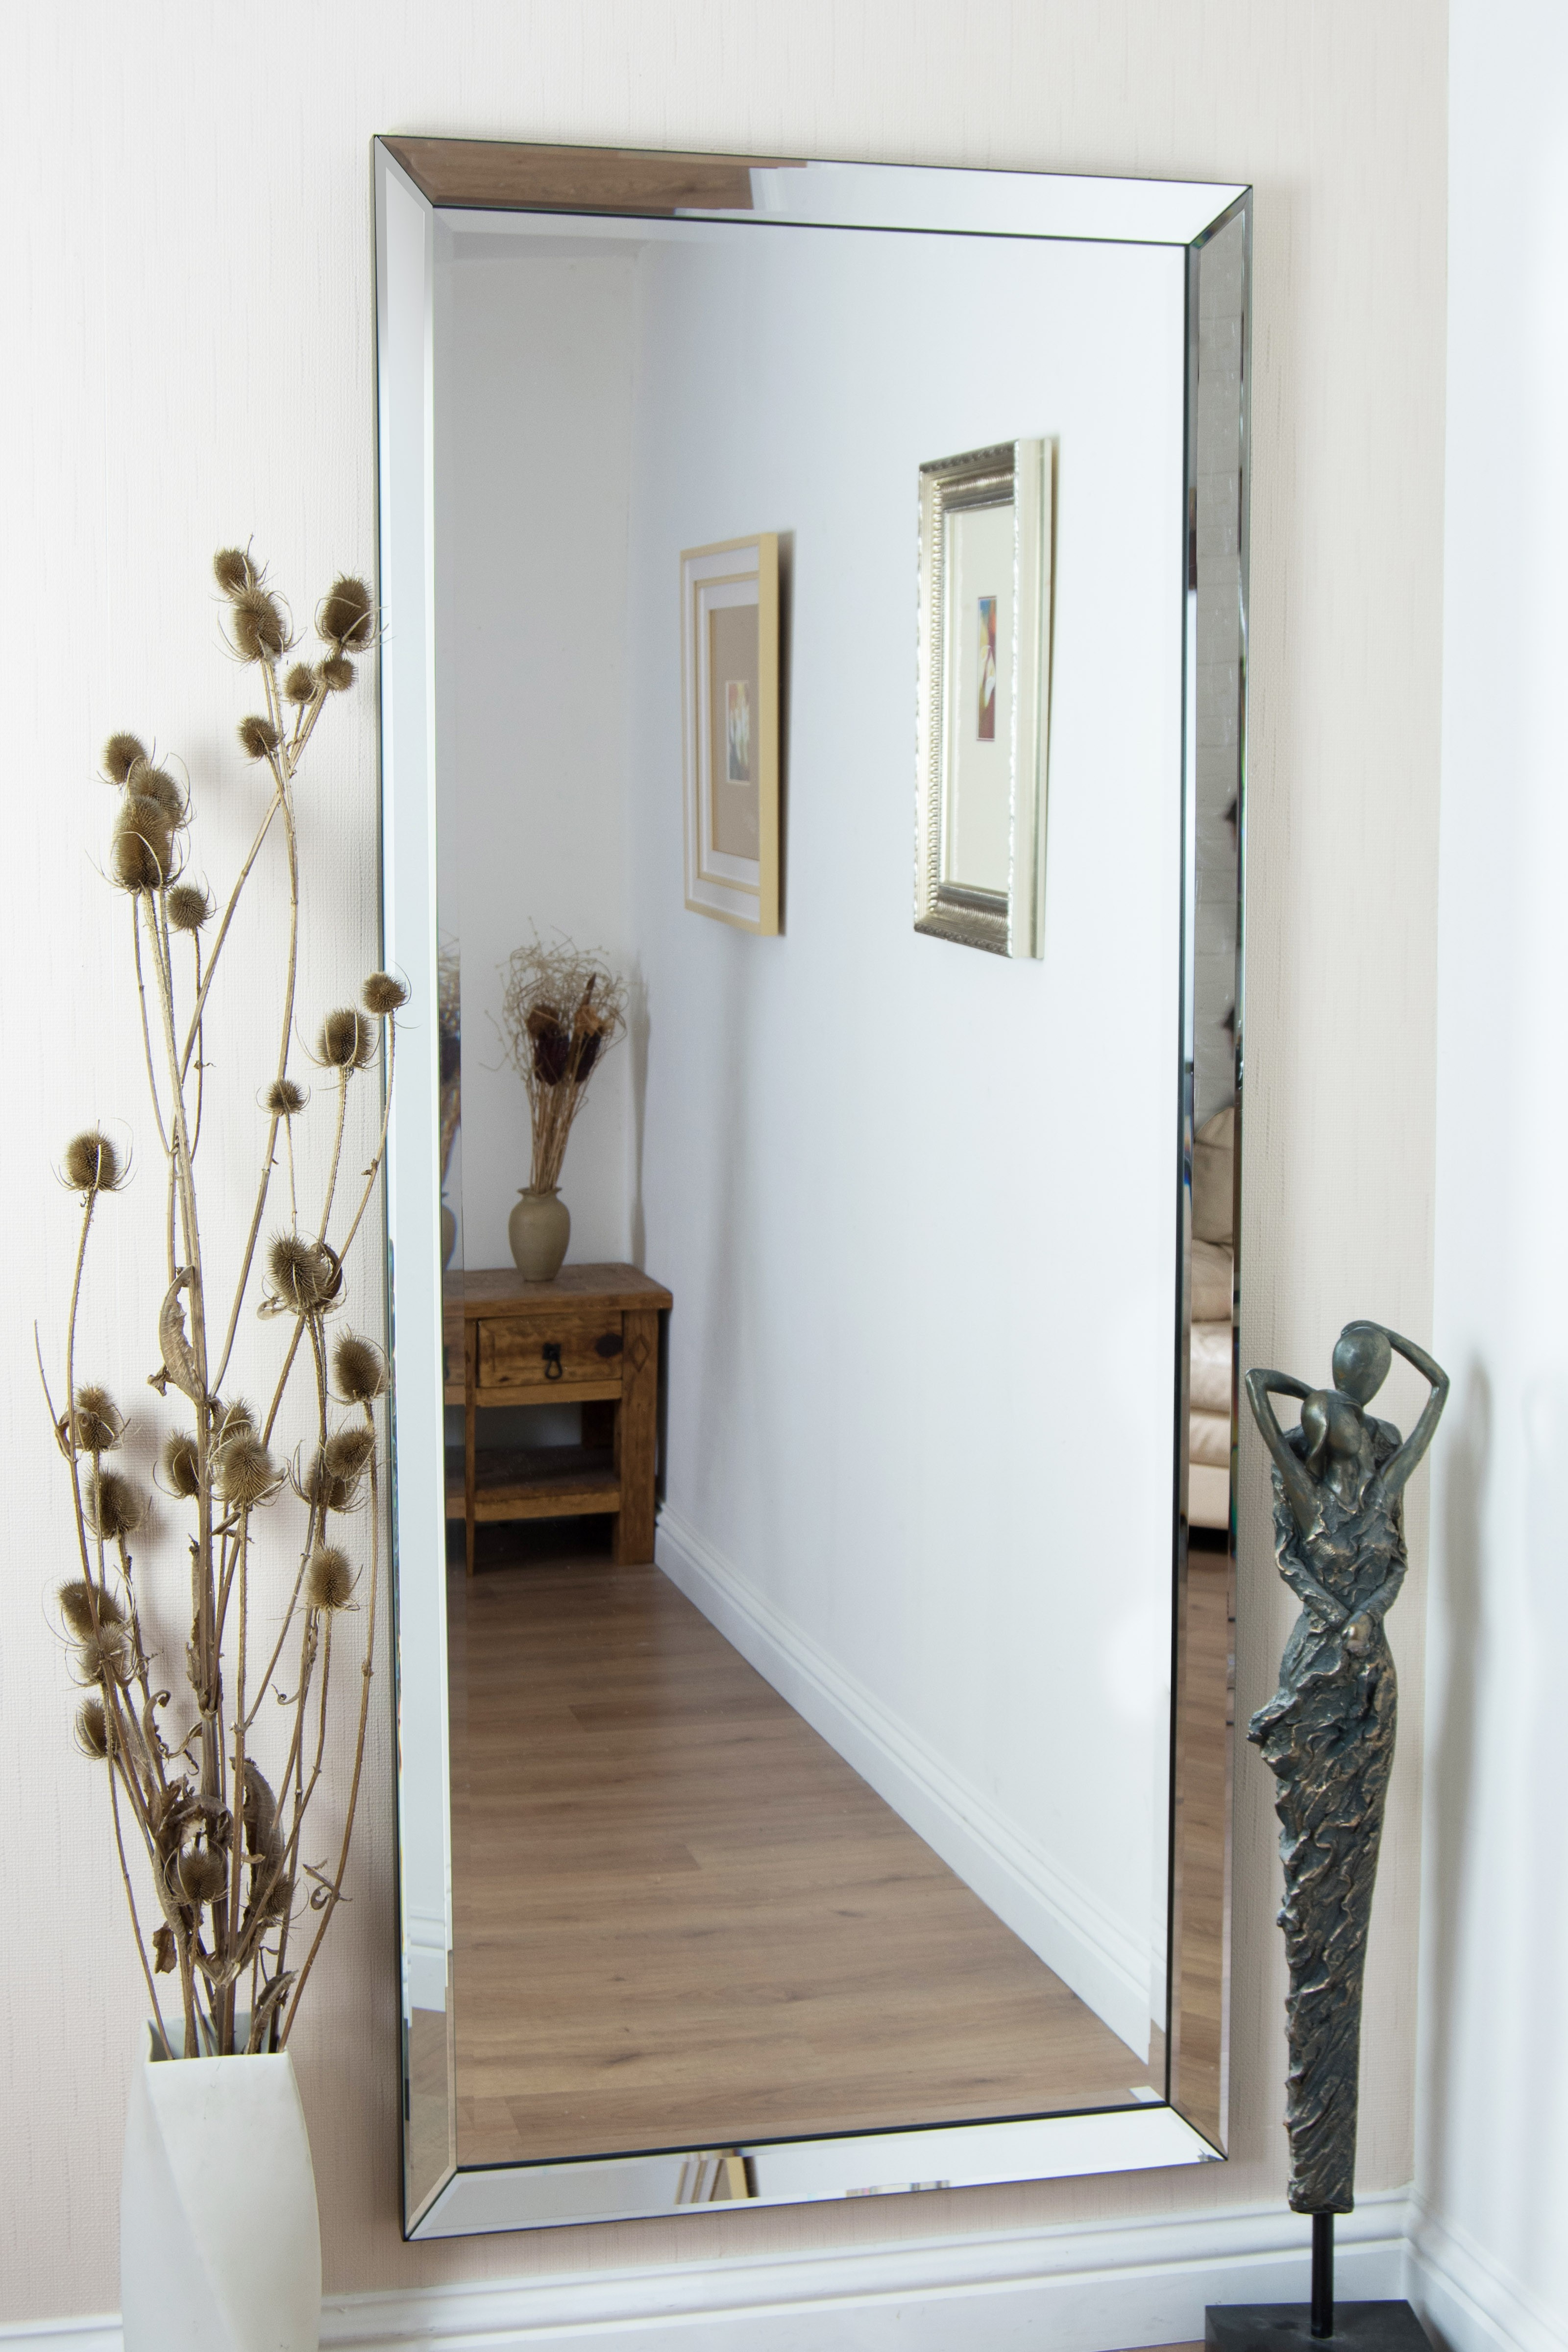 Full Length Decorative Wall Mirrors For Well Known Unique Full Length Wall Mirrors Photos Mirror Decorative Decoration (View 6 of 20)